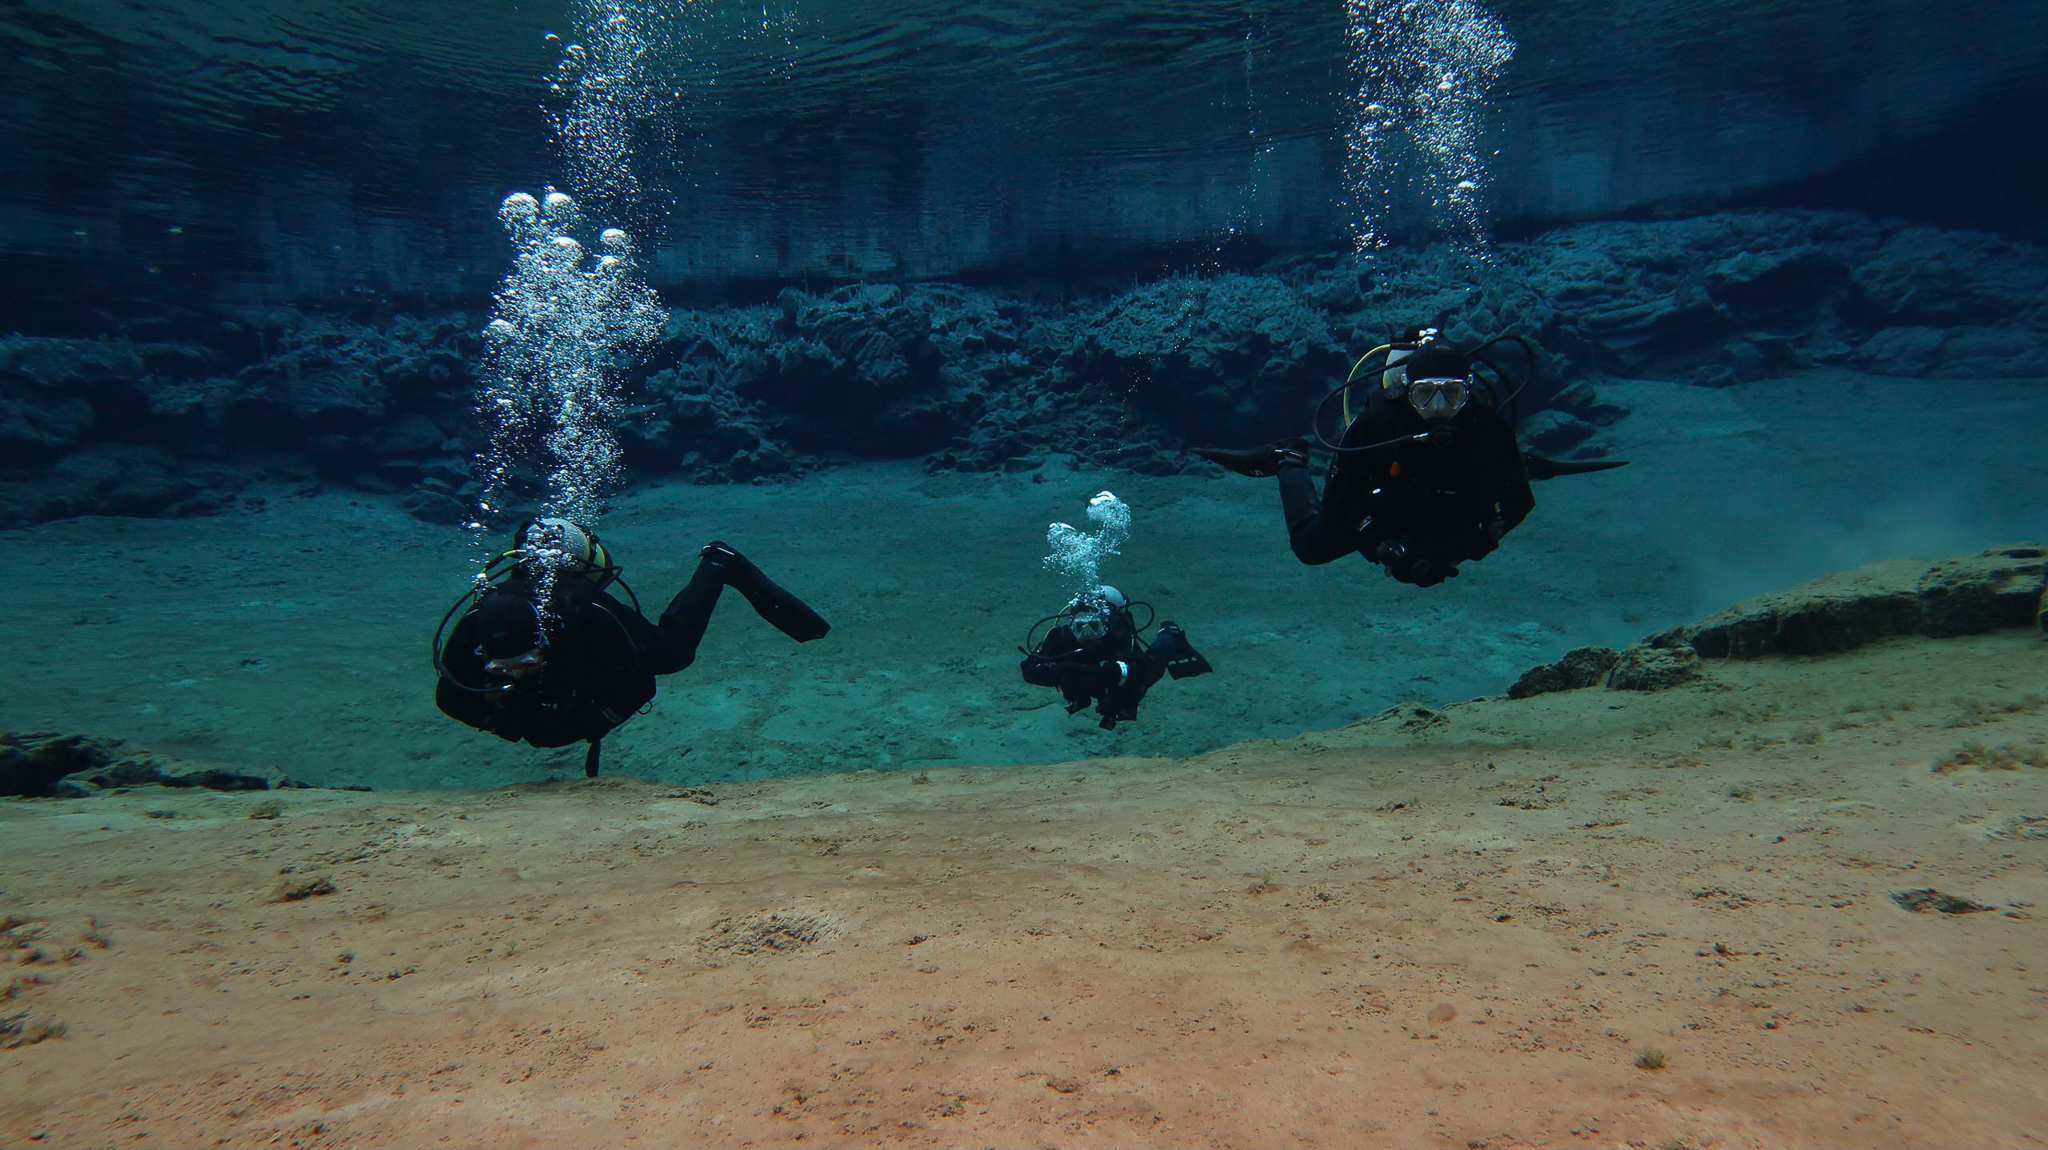 Incredibly clear waters at Silfra Fissure in Iceland. Photo by Tania Roque of DIVE.IS